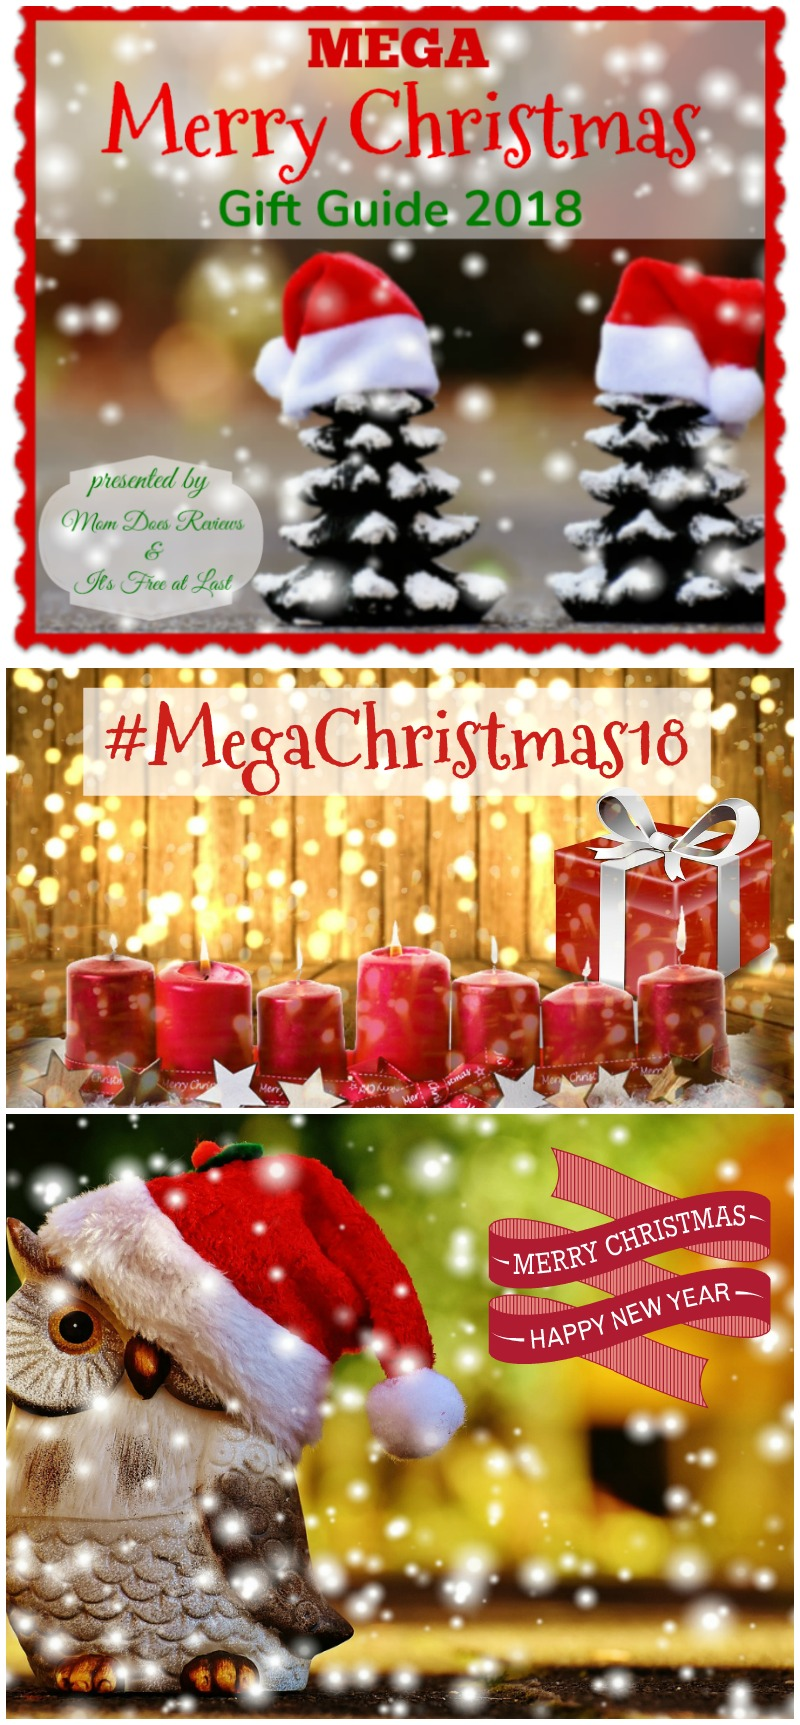 Mega Merry Christmas Gift Guide #Christmas #giftguide #christmasgifts